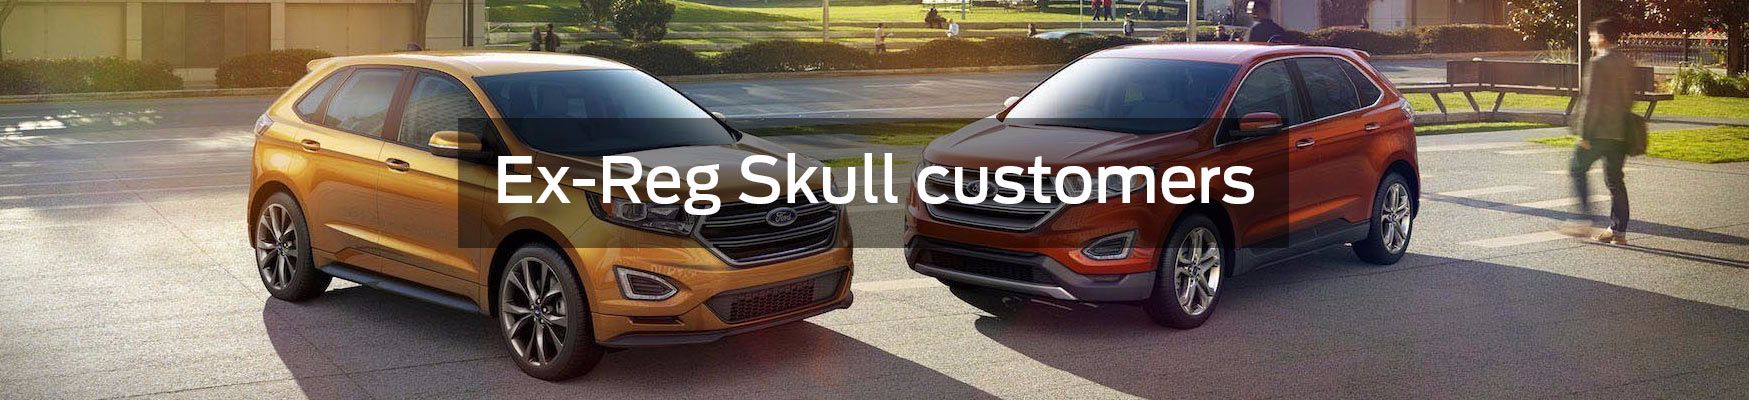 Looking after Ex-Reg Skull Customers